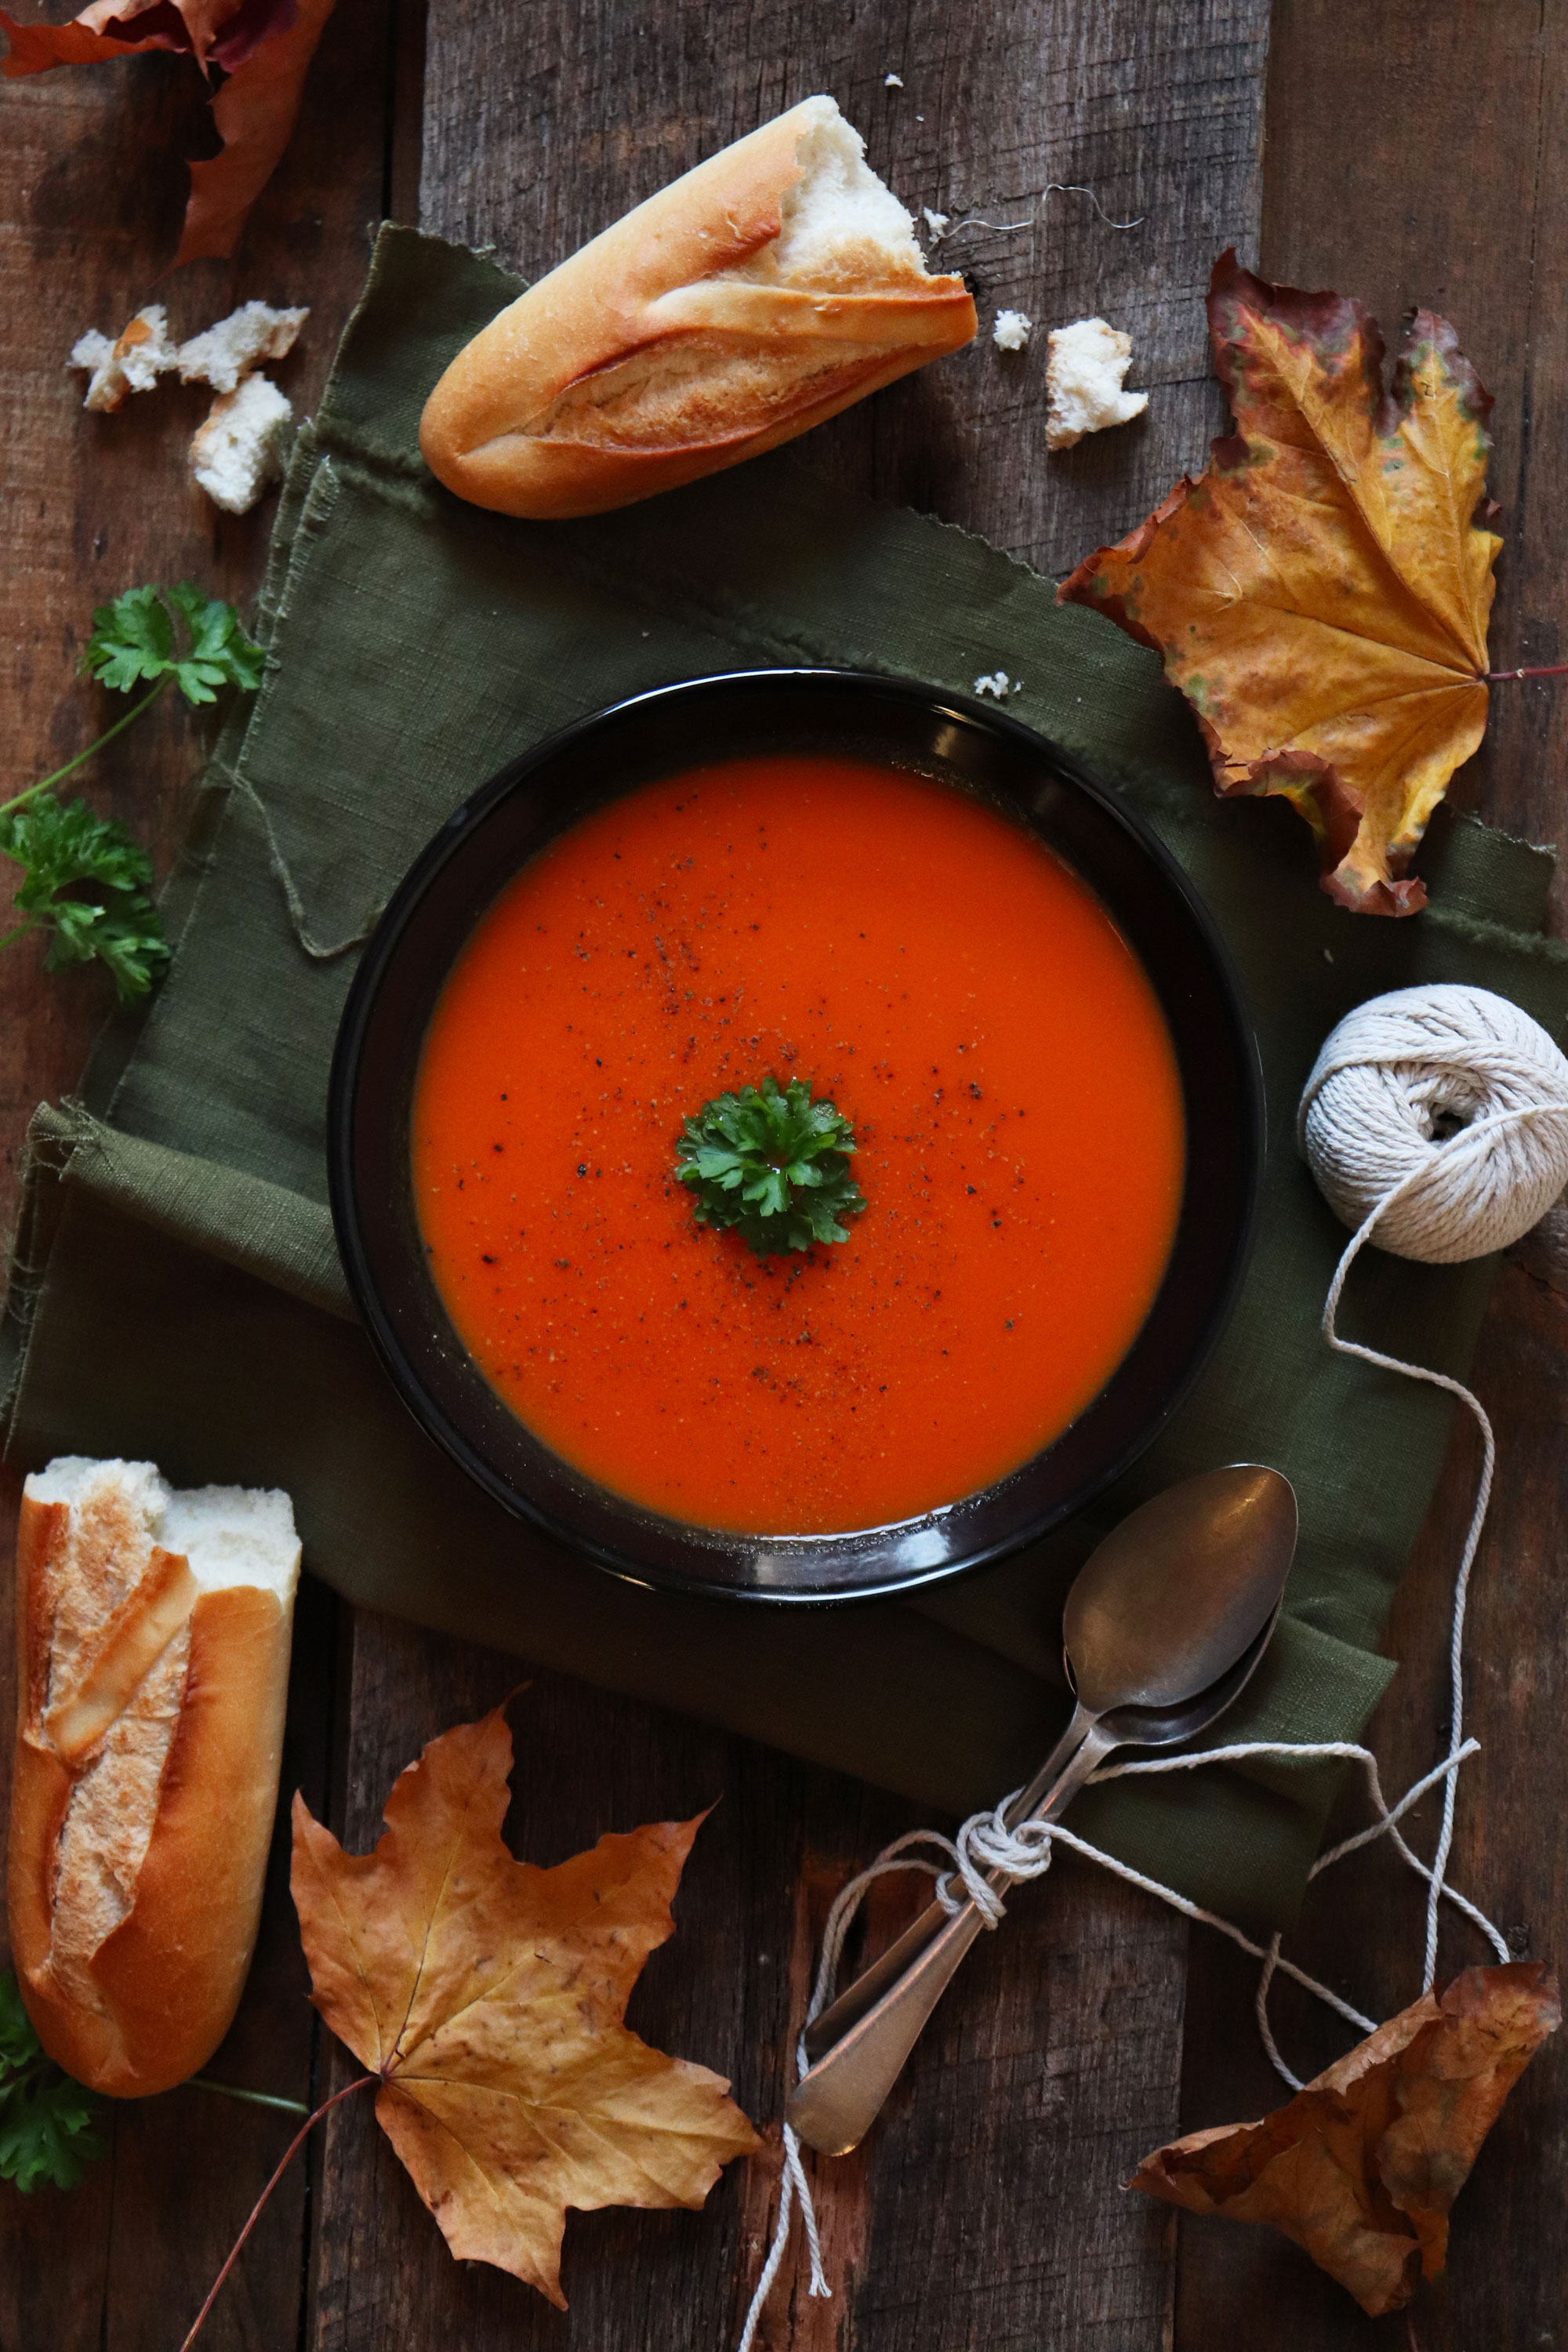 Roasted red pepper and tomatoes soup